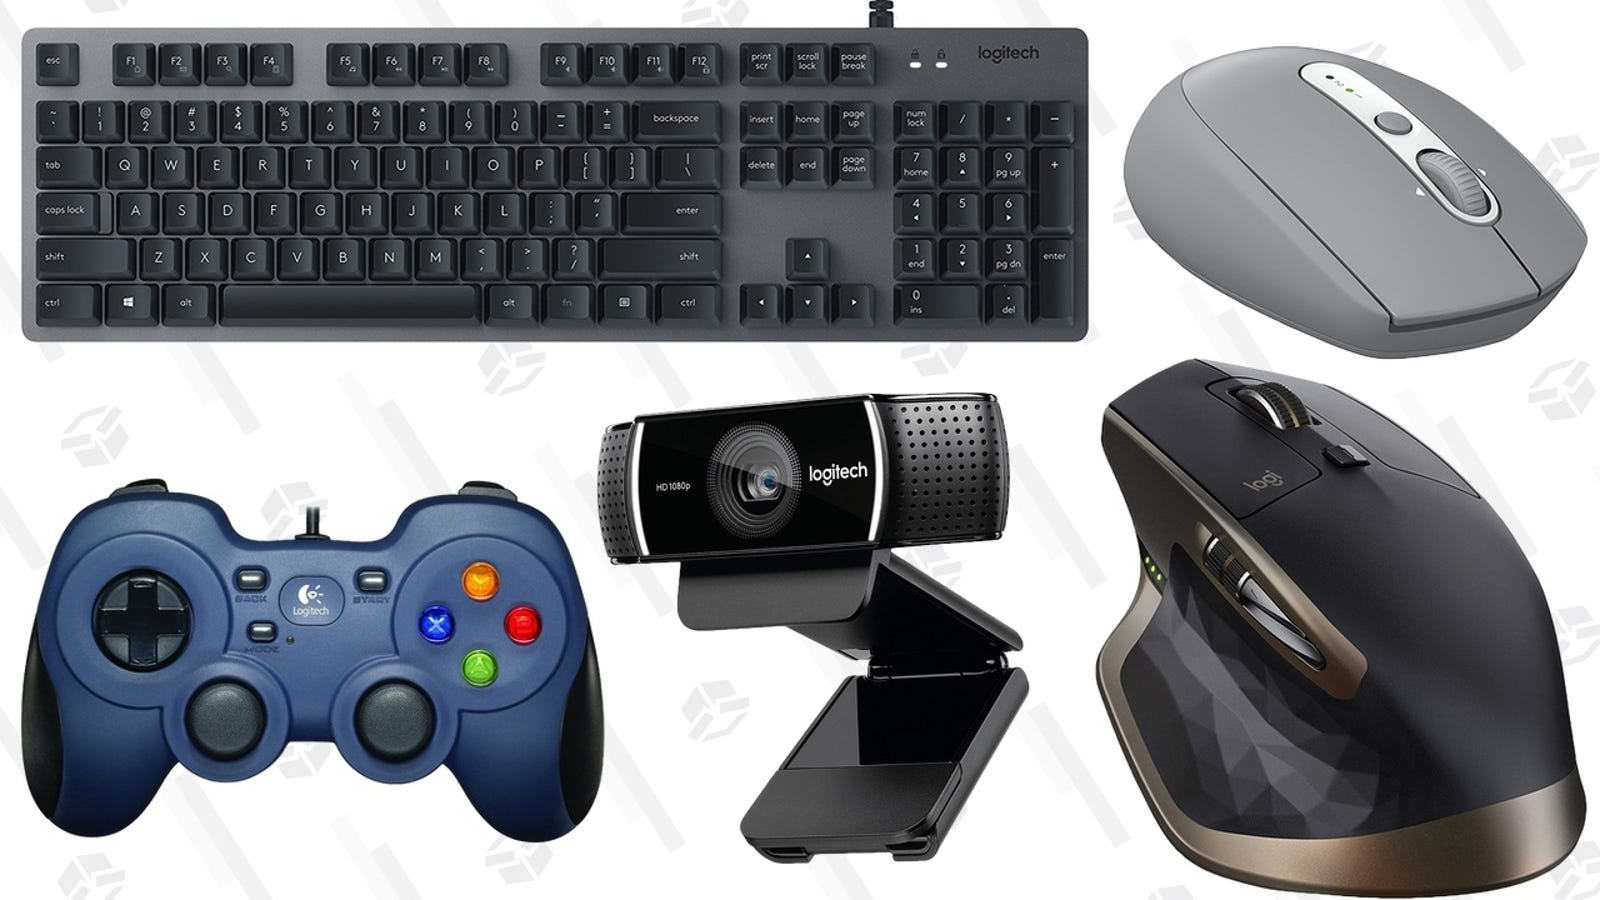 Dc5n United States Software In English Created At 2018 09 26 1823 Digital Alliance Mouse Gaming G7 Alpha Drak Gray Amazons Playing The Hits Today Addition To A Pc Storage Sale Theyre Also Running Big Gold Box On Logitech Peripherals